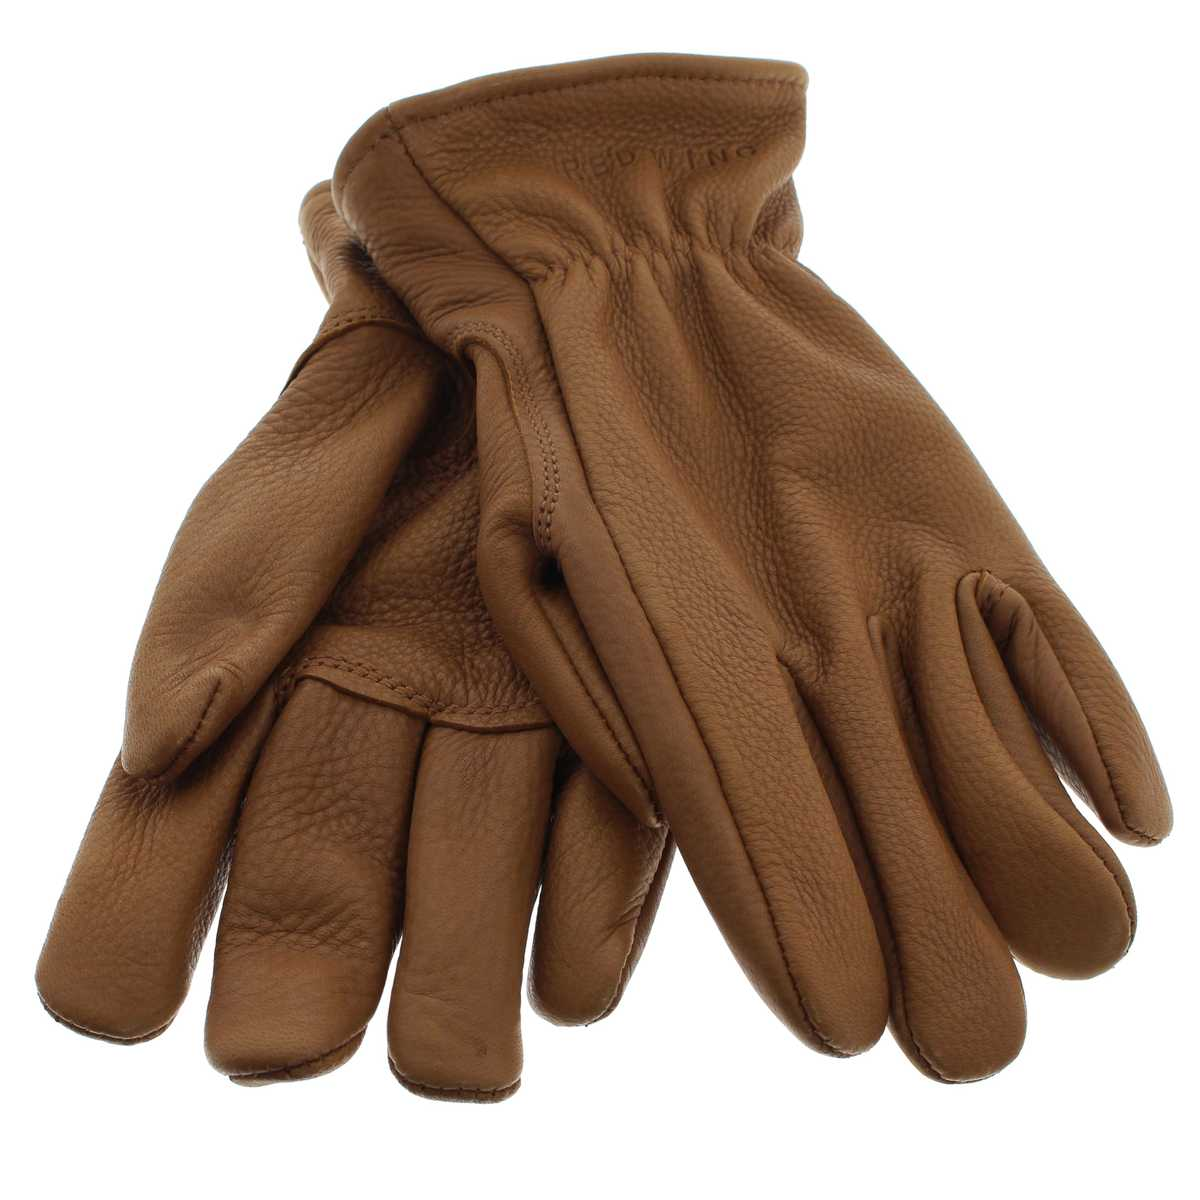 Red Wing Shoes 95230 GLOVES Nutmeg gloves - brown